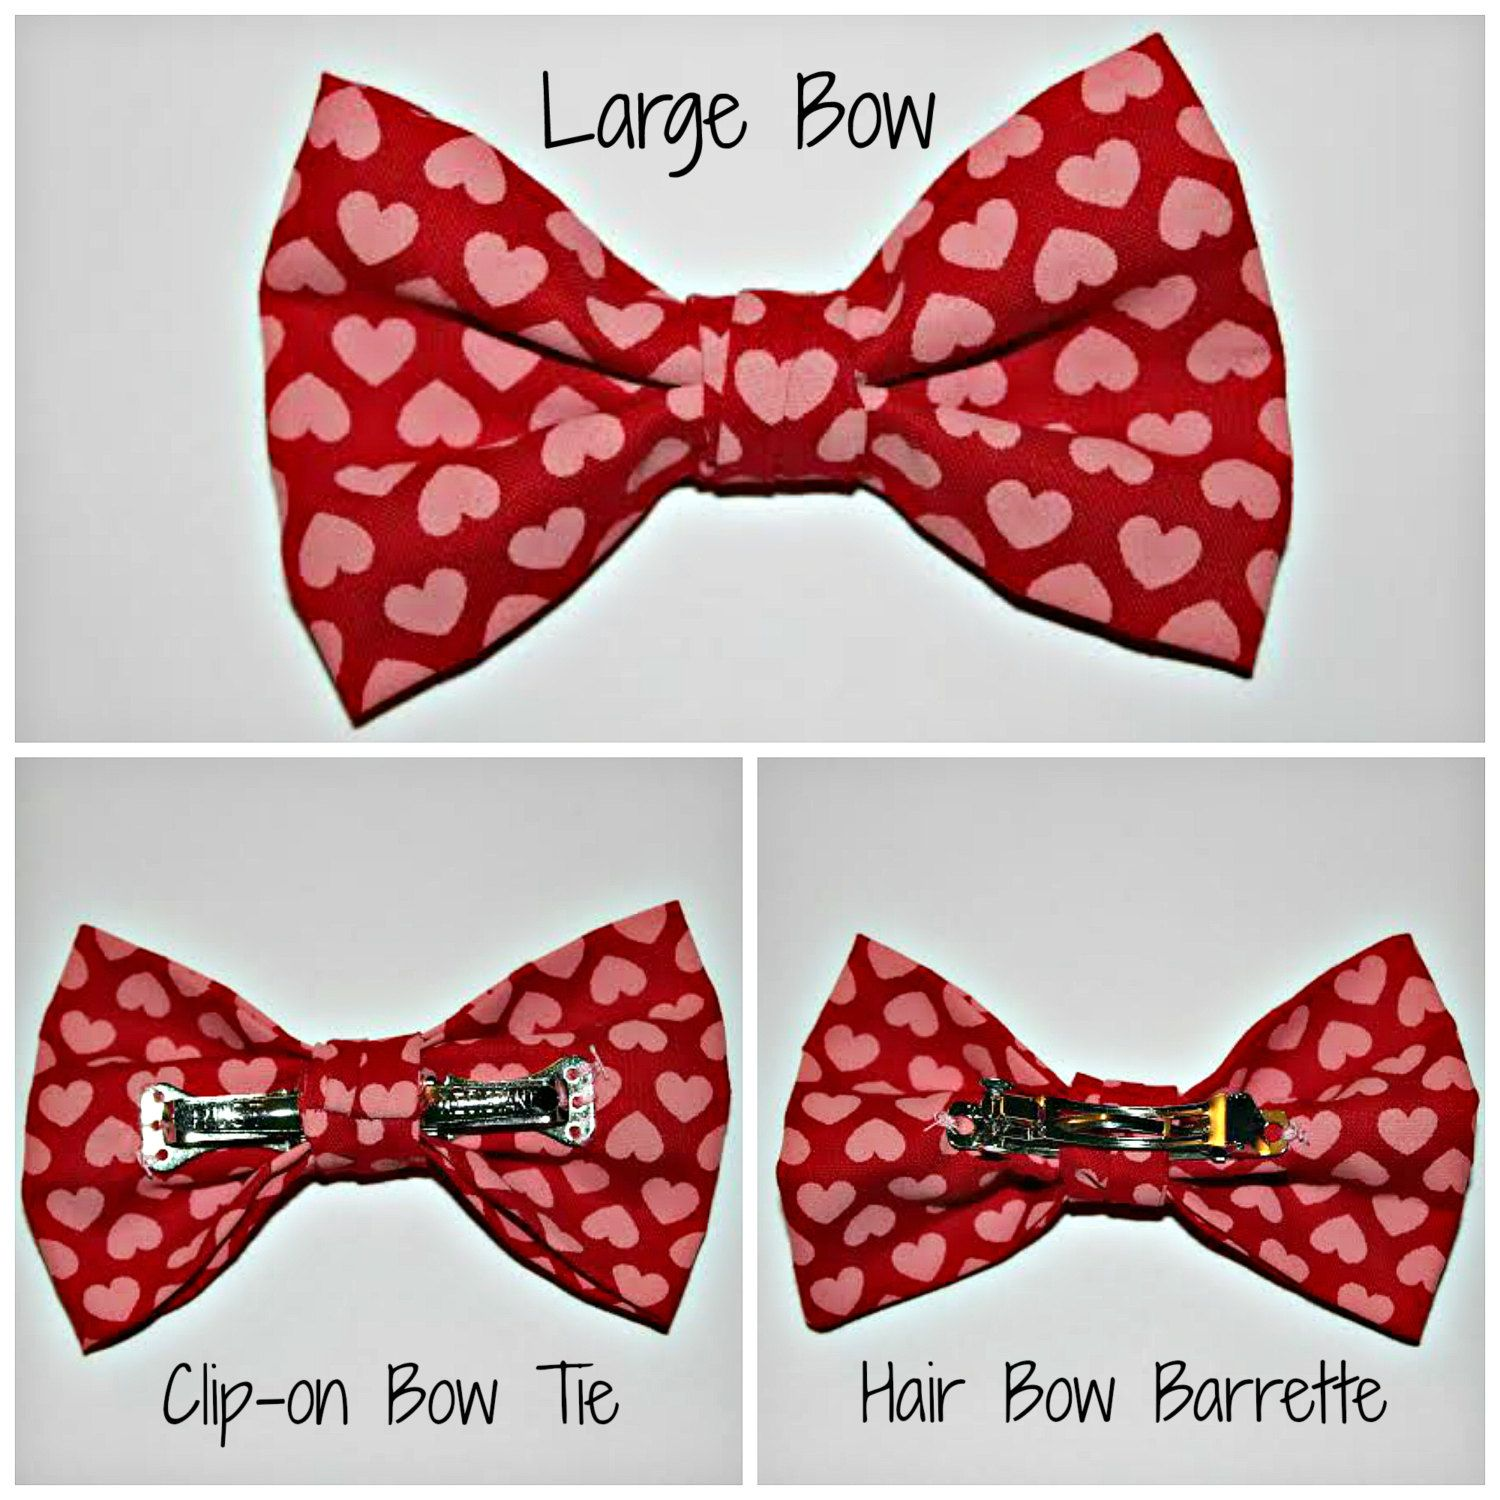 c.c. sew NEW LISTING!! In time for Valentine's Day!  Clip-on Bow Tie or Hair Bow - Classic Valentine Hearts Pink Red- Boy Girl Mom Matching Coordinate Twins Sibling Family Clip-on Barrette Fun by ccsewSHOP on Etsy